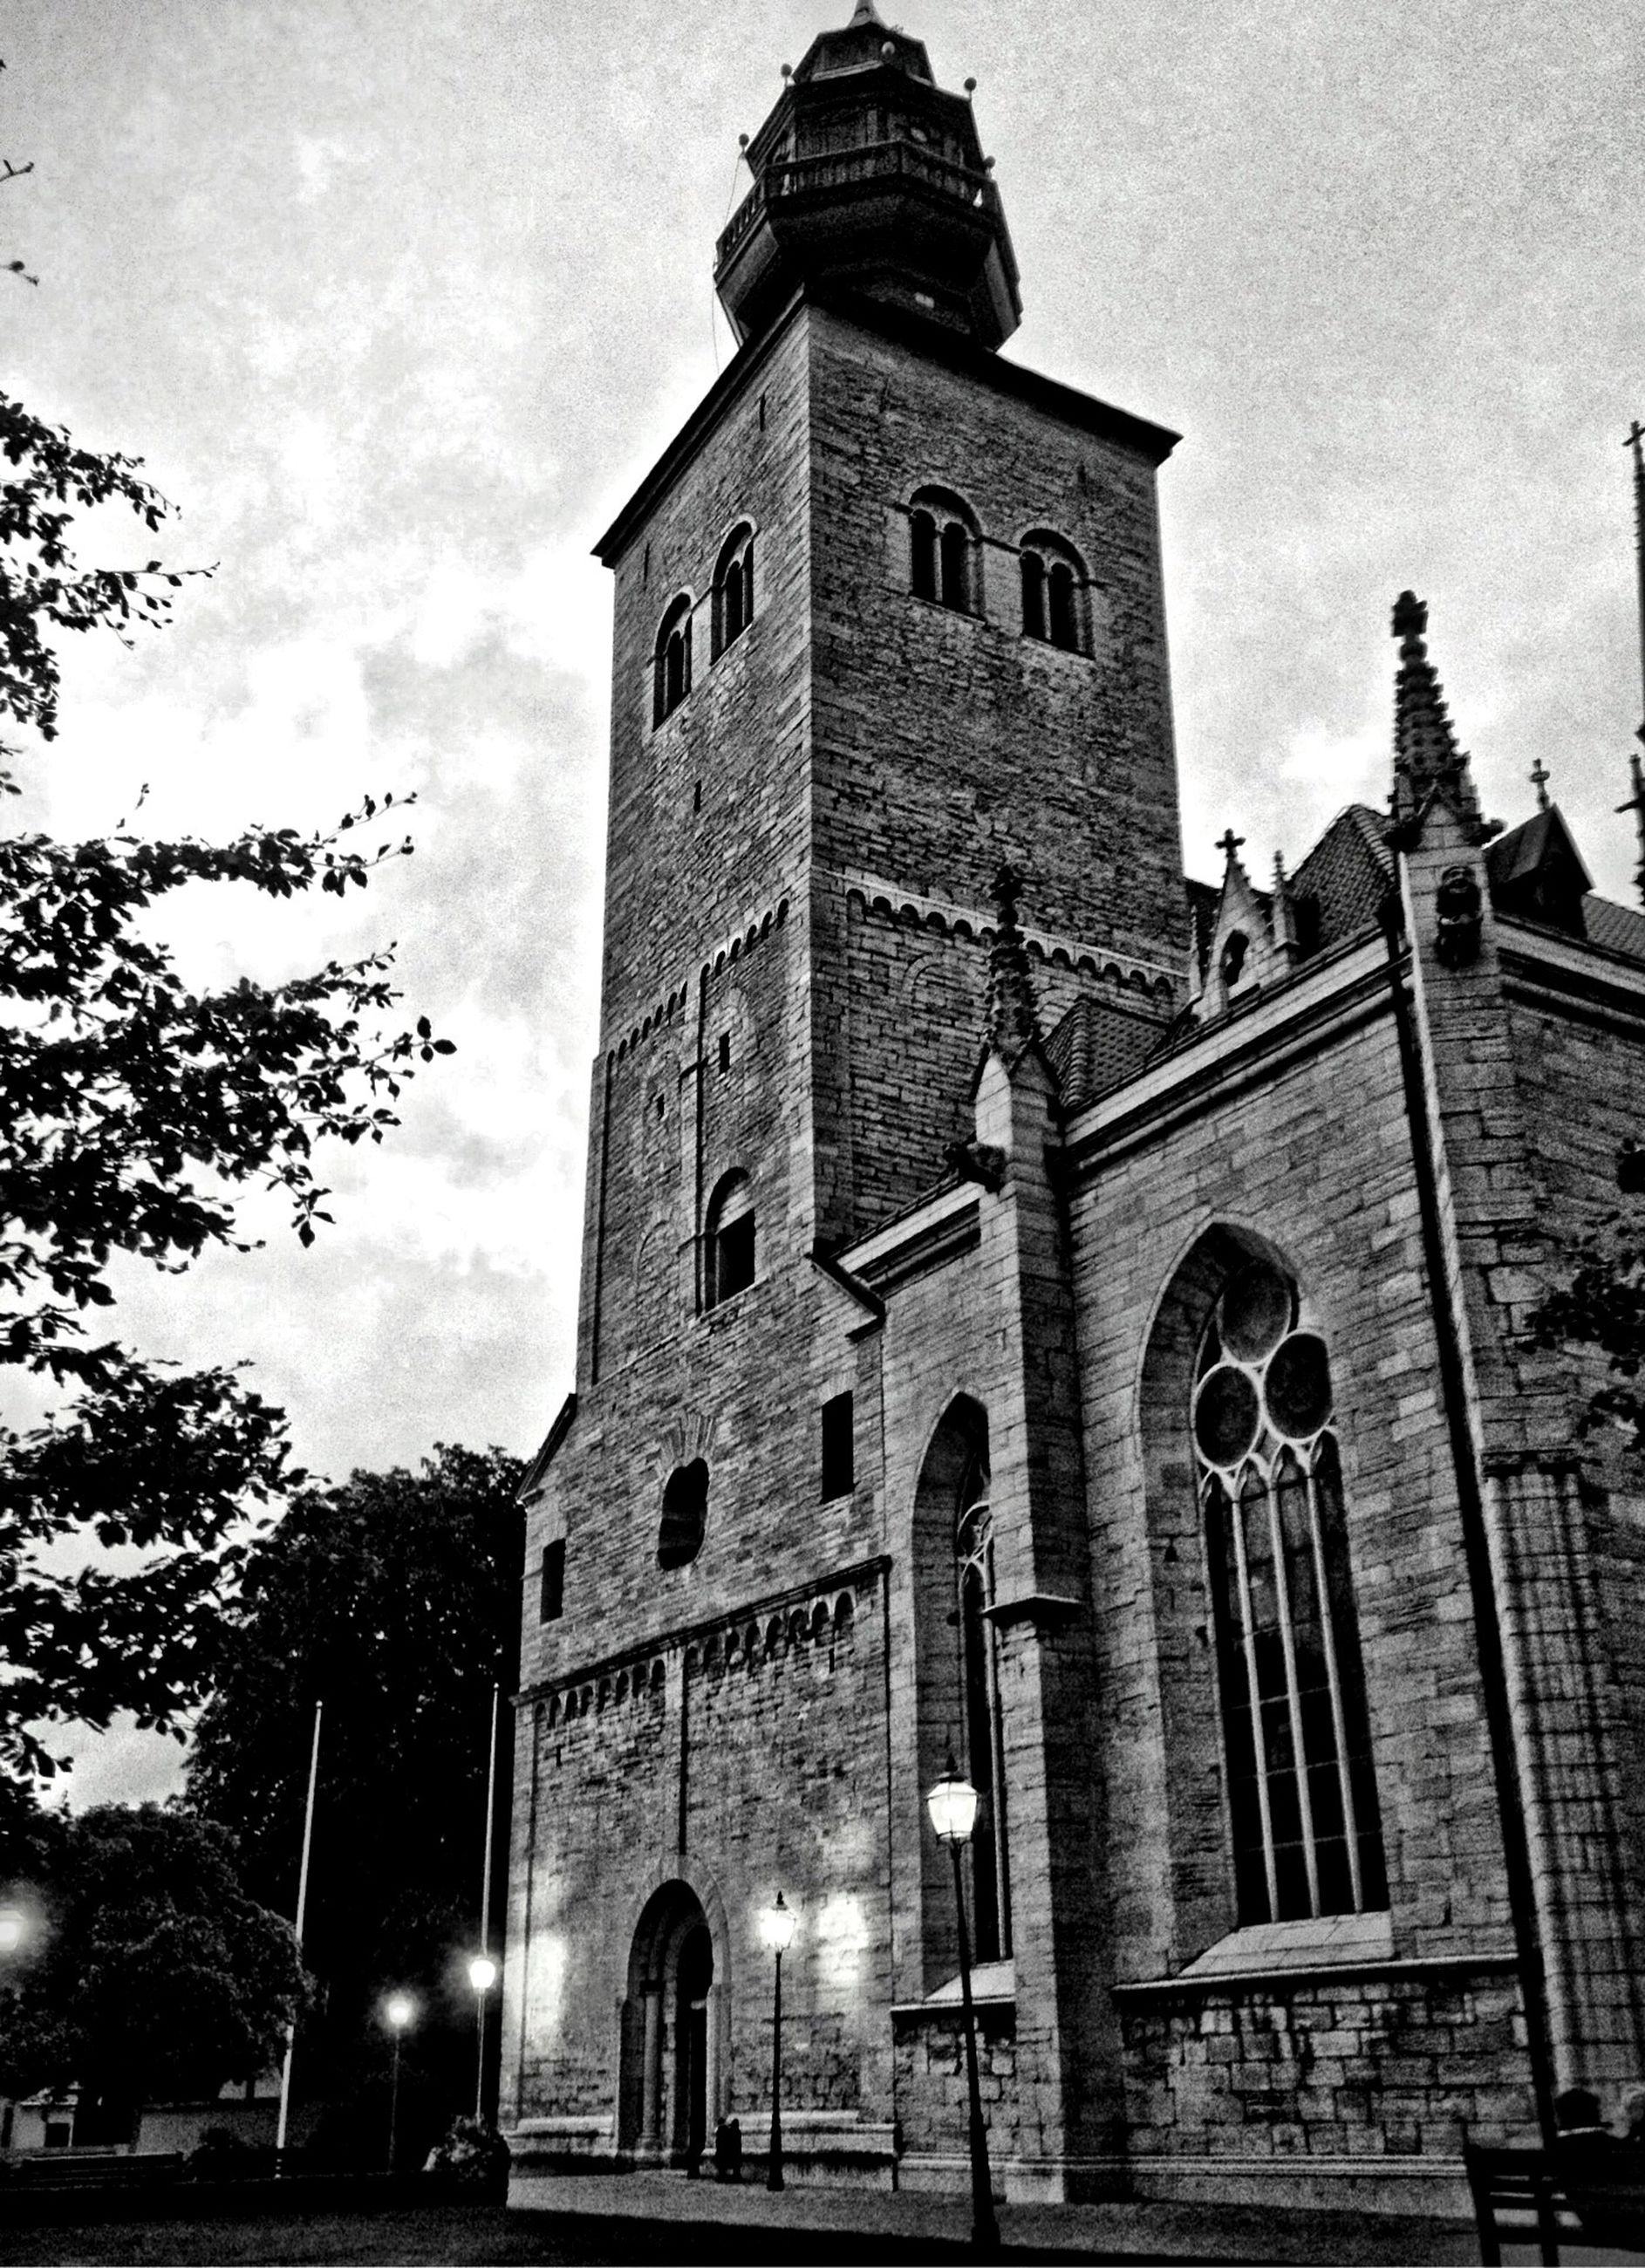 architecture, building exterior, built structure, low angle view, sky, church, tree, street light, facade, history, old, religion, window, outdoors, bare tree, building, exterior, place of worship, arch